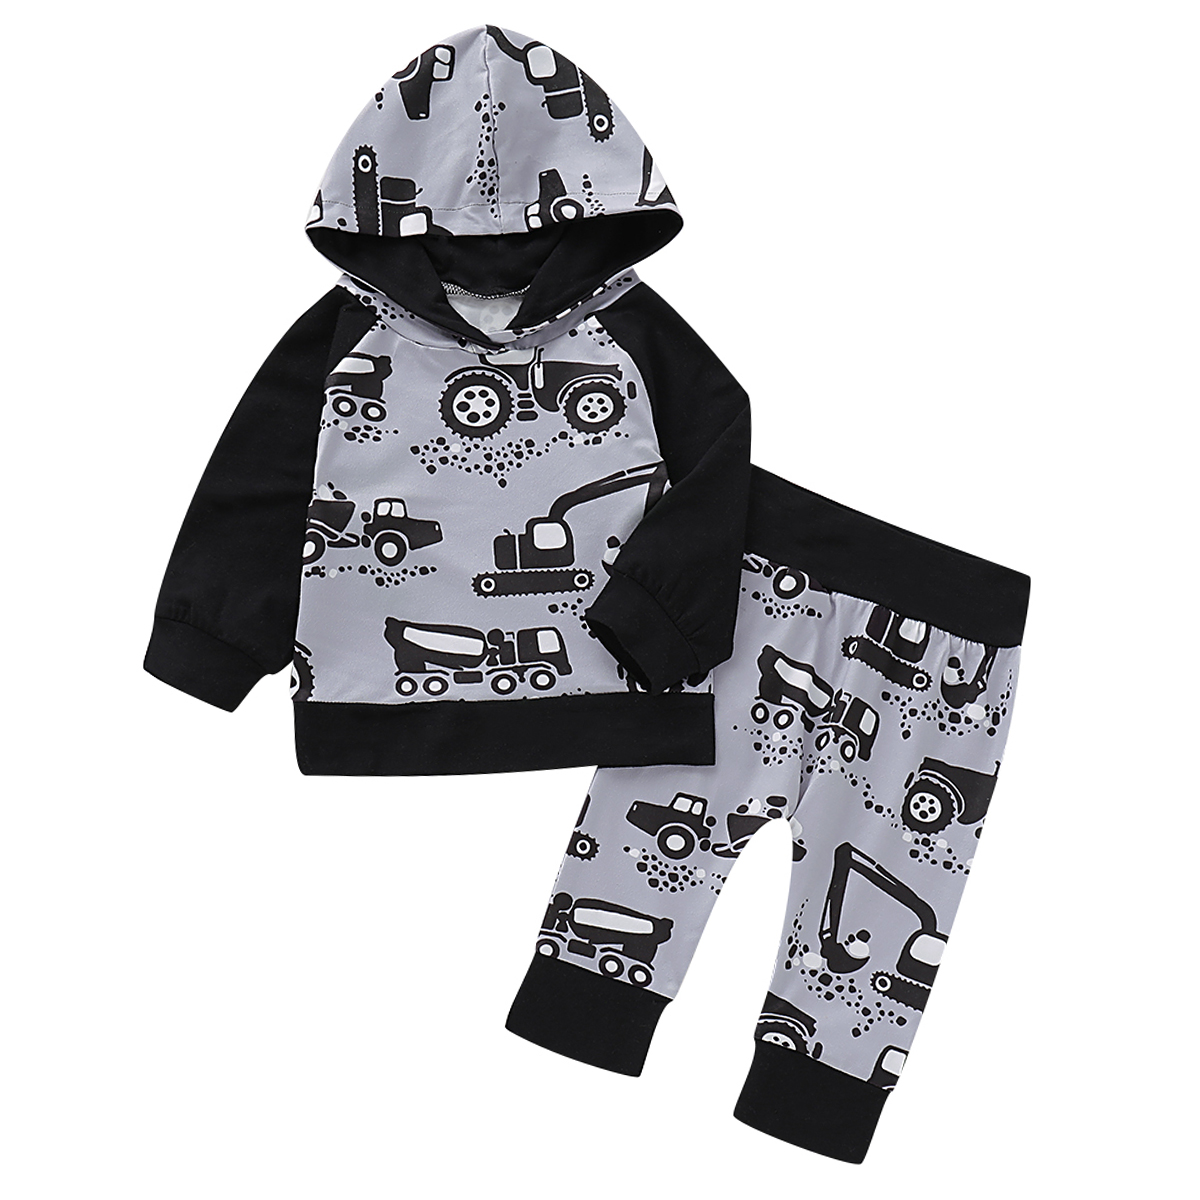 2019 Baby Autumn Winter Clothing Tractor print Newborn Infant Kids Boy Girl Clothes Sets Cartoon Hooded T-shirt Top+Pant Outfits